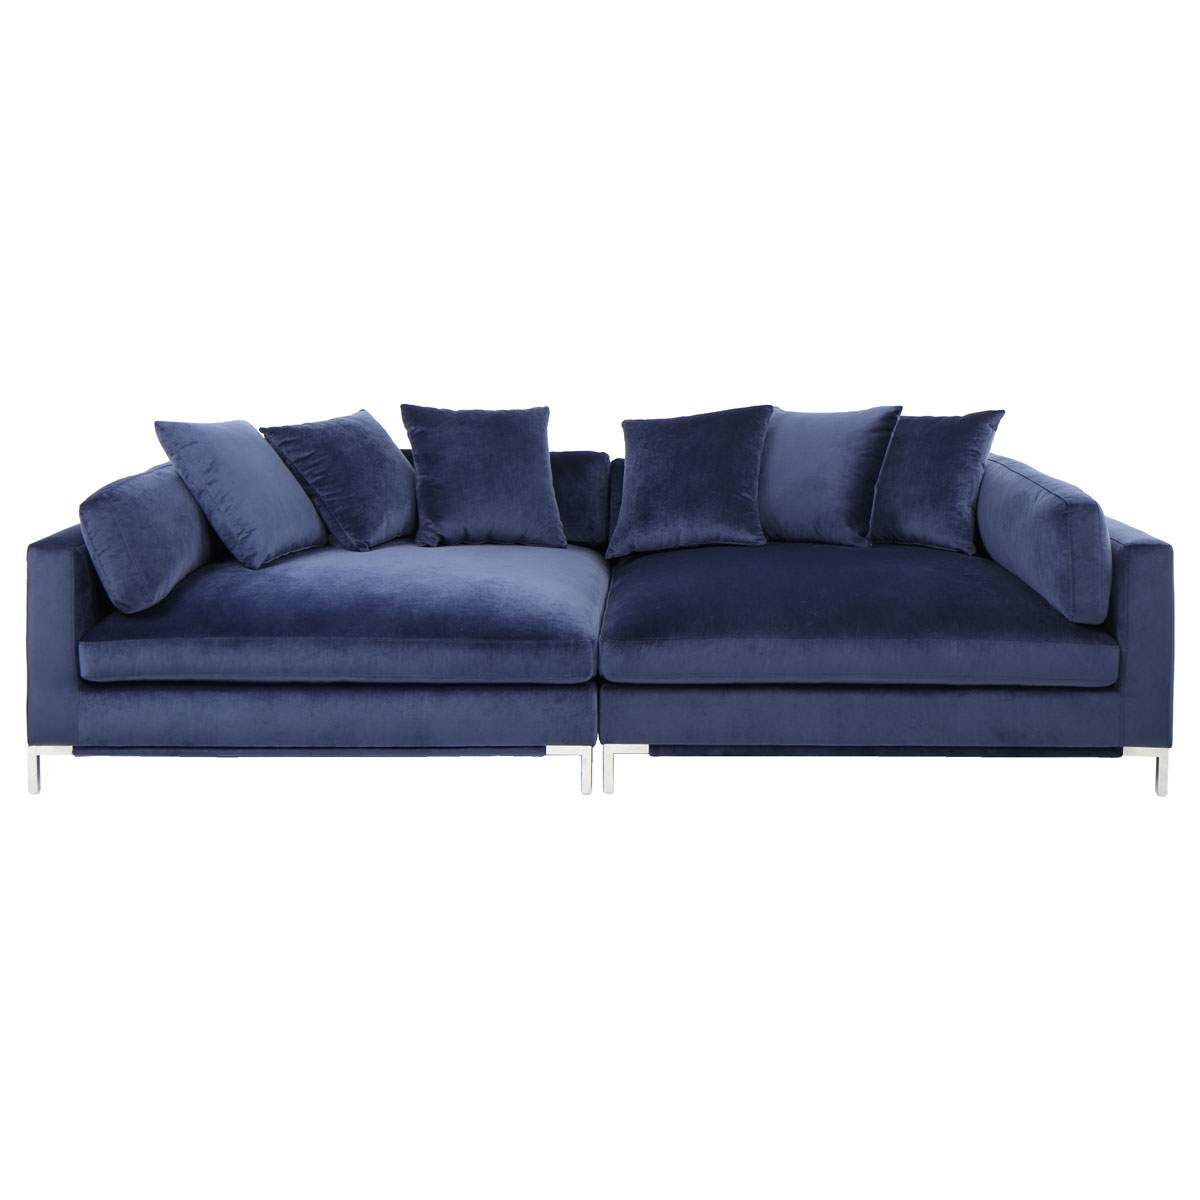 Belair Sofa In Blue Jerome S Furniture Affordable Living Room